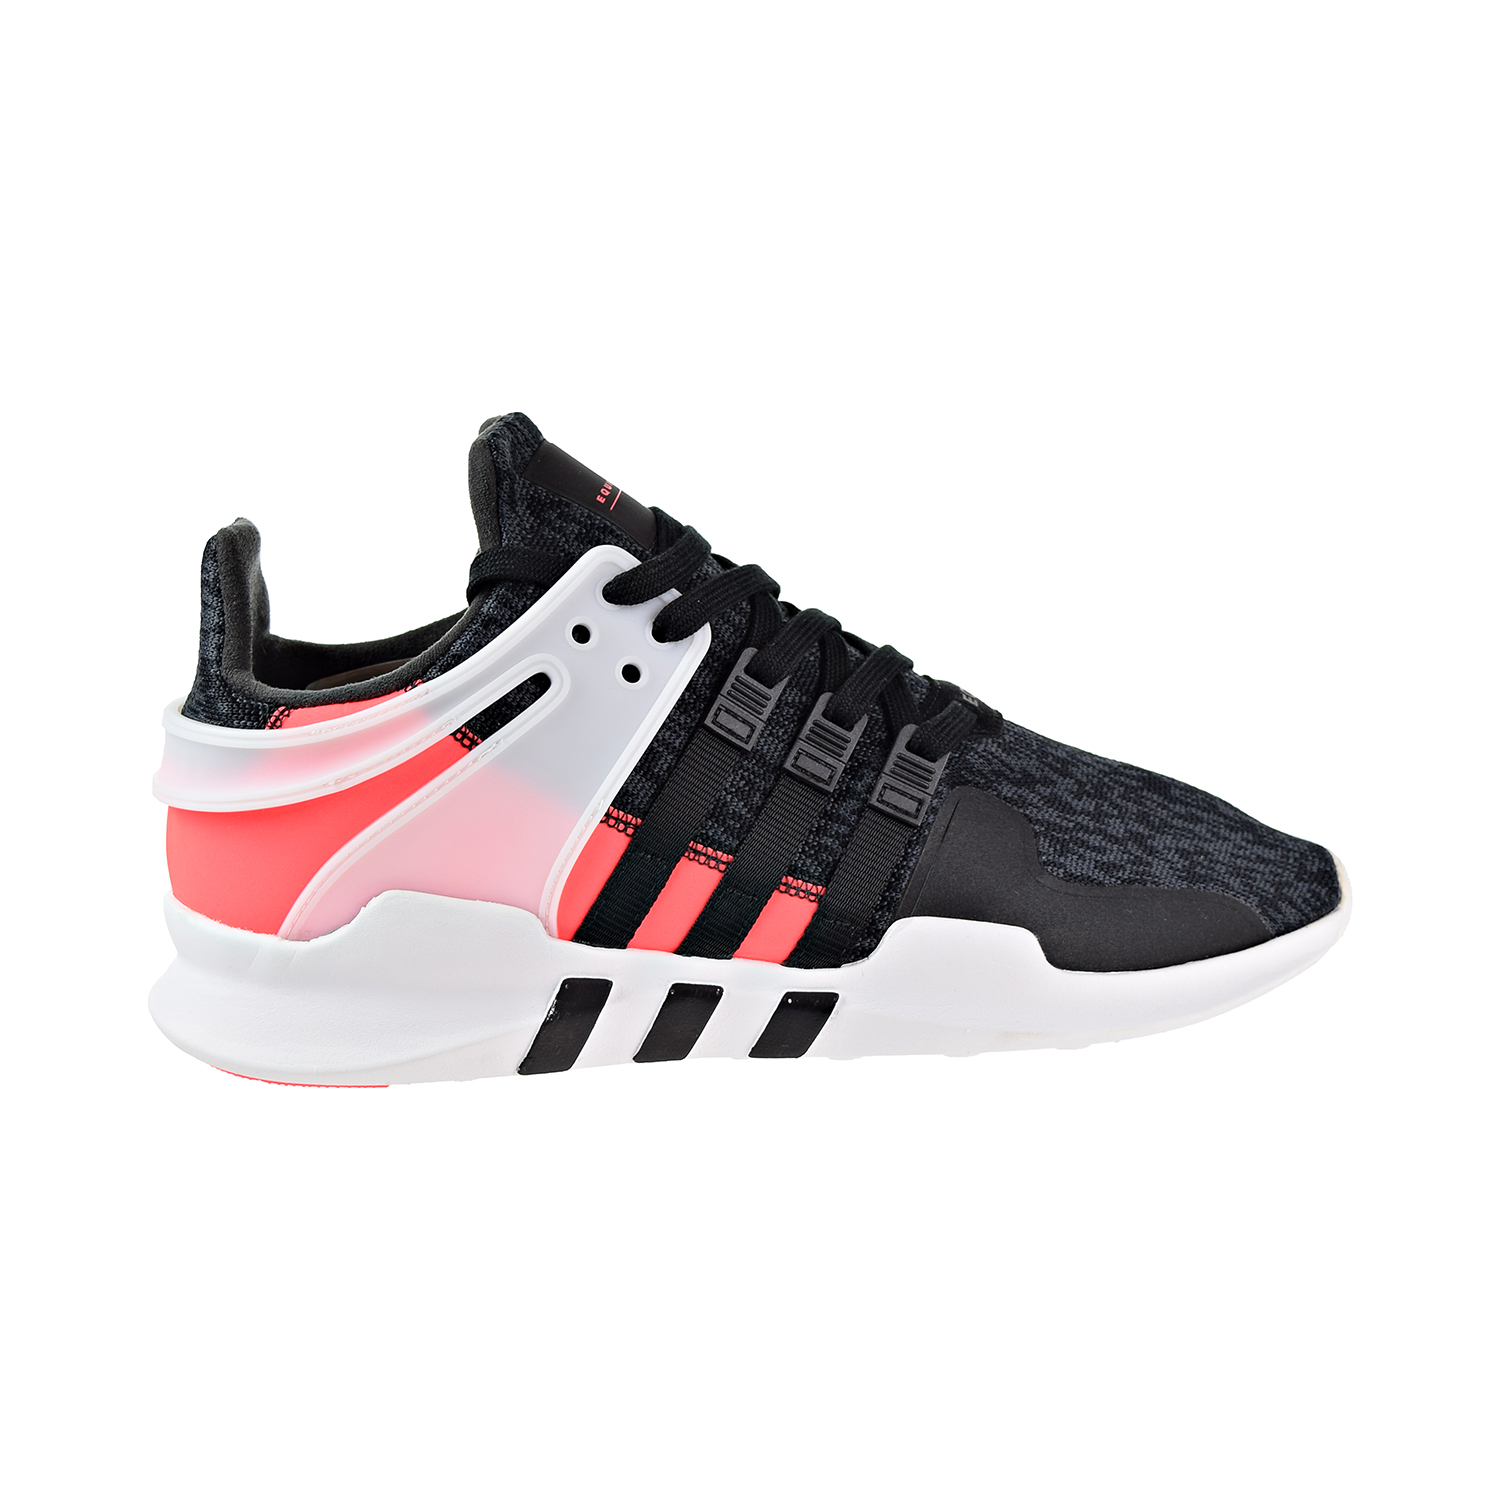 new product 3124b f45fa Details about Adidas EQT Support Adv Mens Shoes Core BlackCore BlackTurbo  bb1302